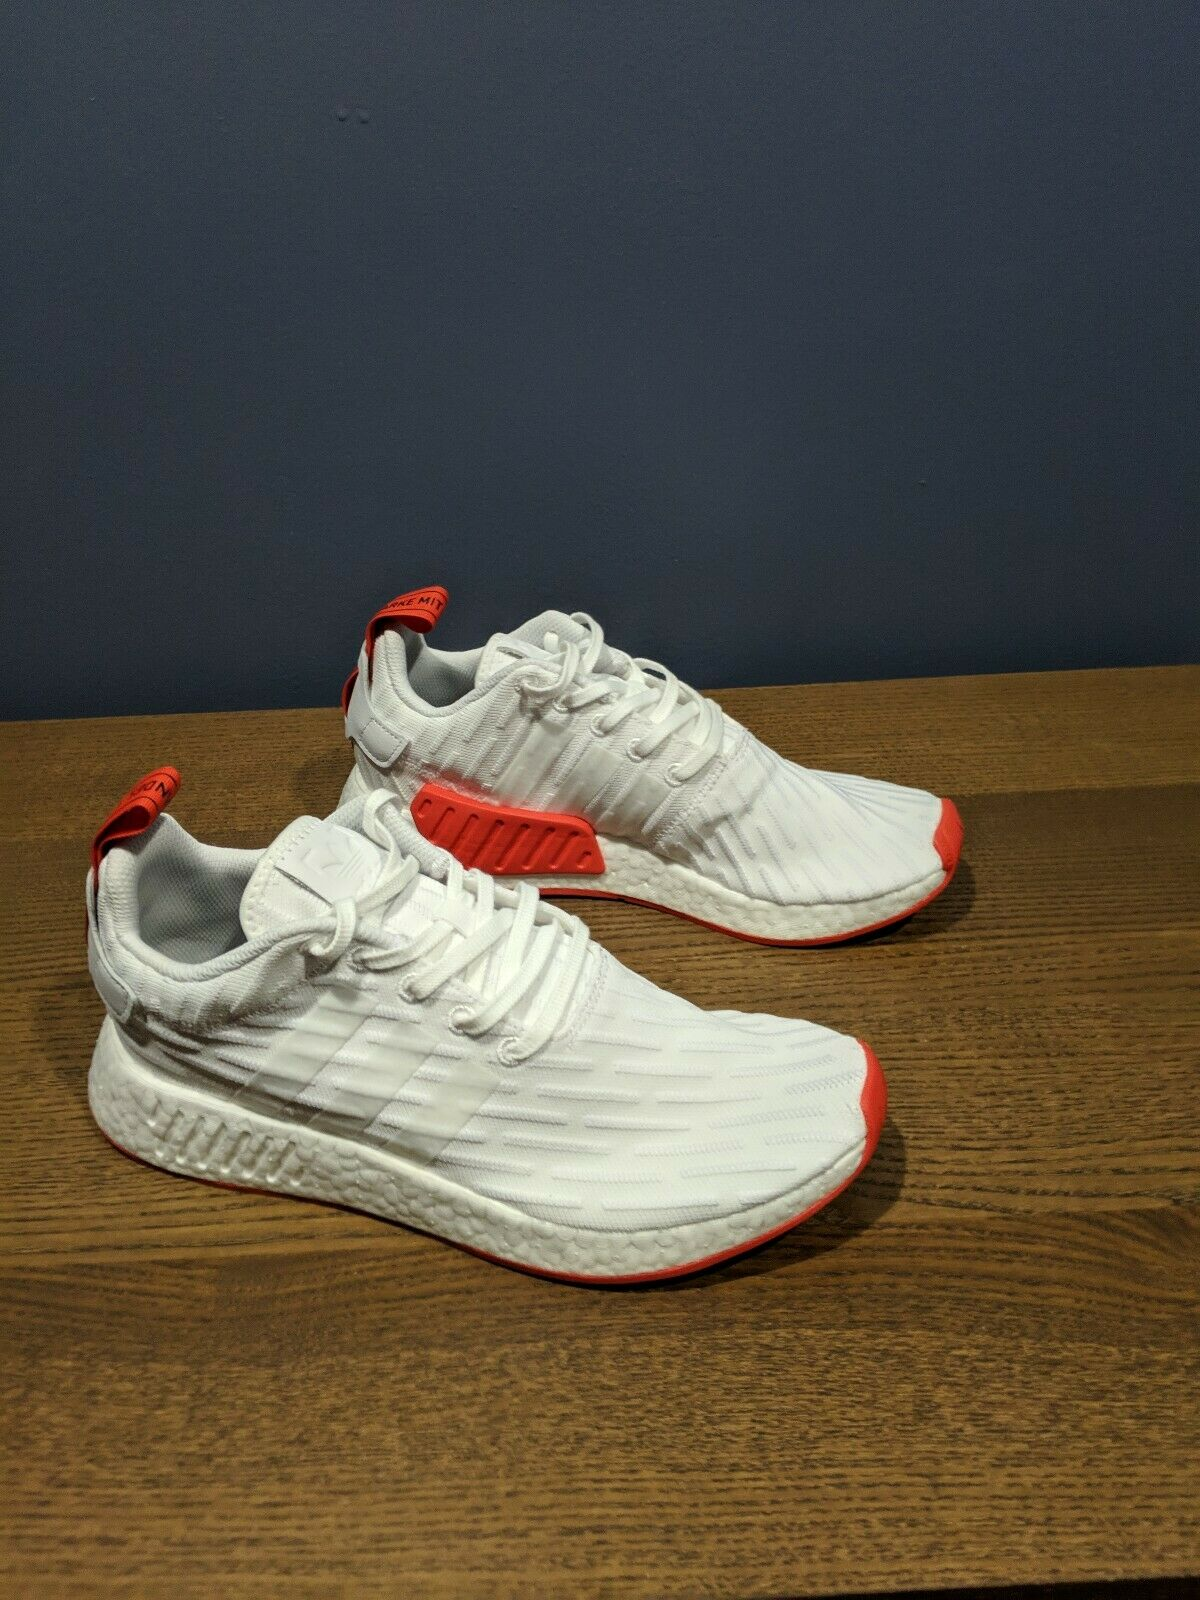 Adidas NMD R2 Prime Knit Size 9 White Core Red BA7253  NMD_R2 PrimeKnit